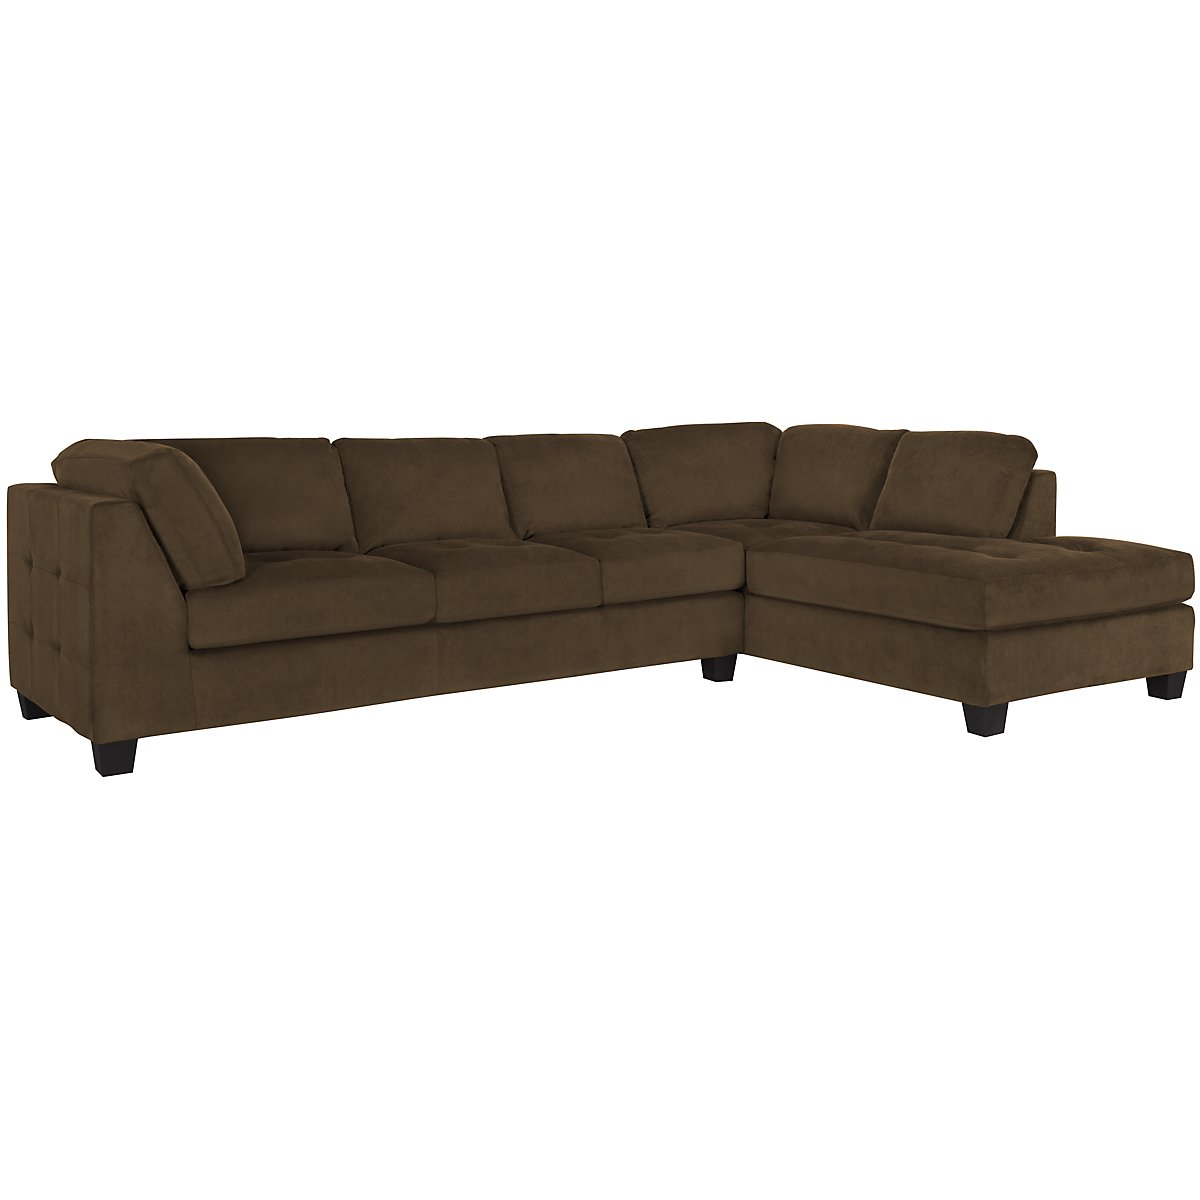 City furniture mercer2 dk brown microfiber right chaise for Brown sectionals with chaise